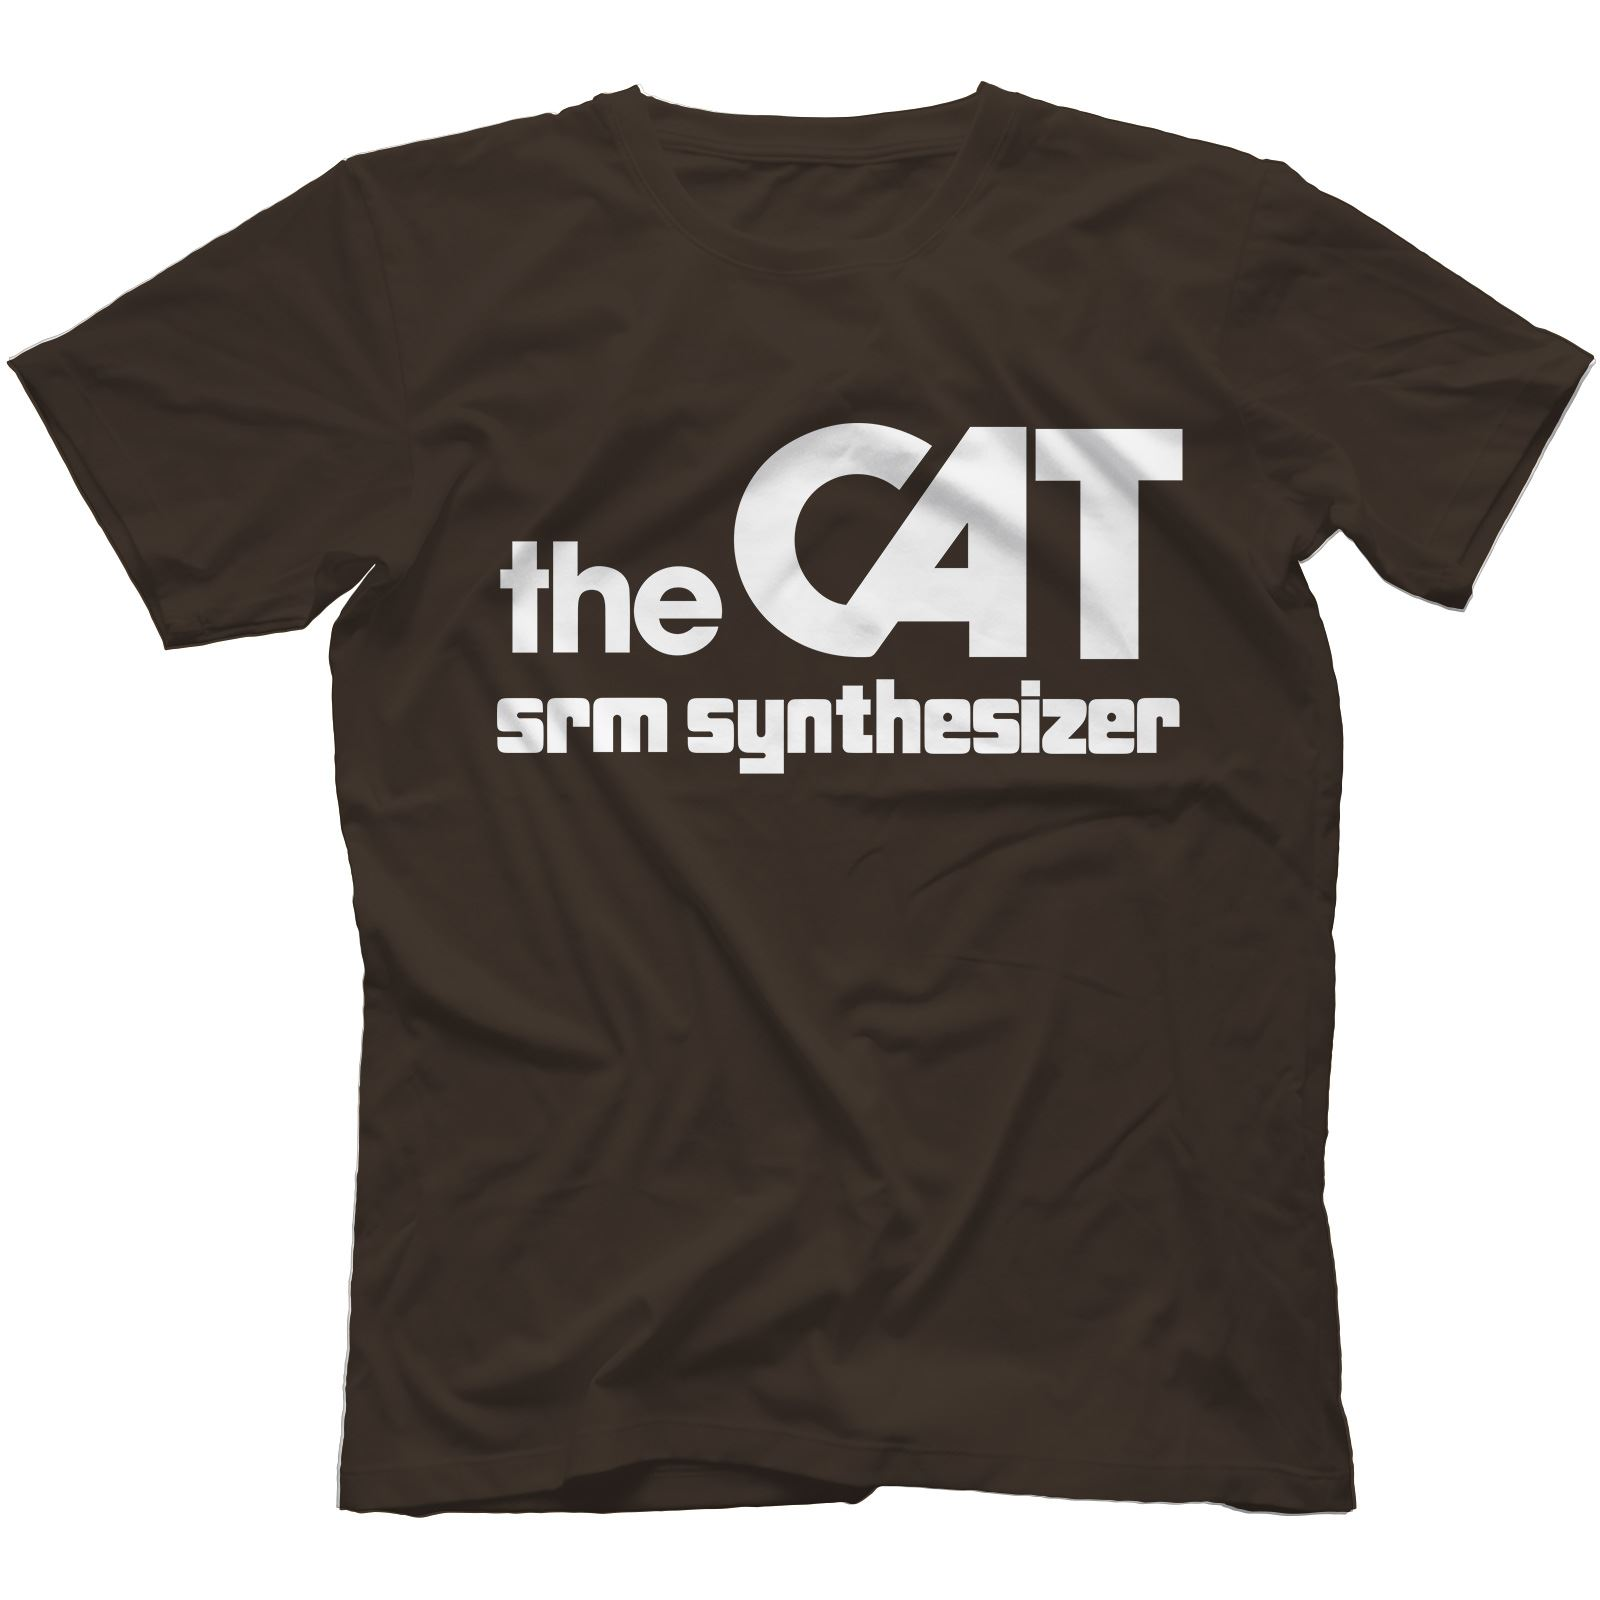 The-Cat-SRM-Synthesiser-T-Shirt-100-Cotton-Retro-Analog-Arp-Odyssey Indexbild 17